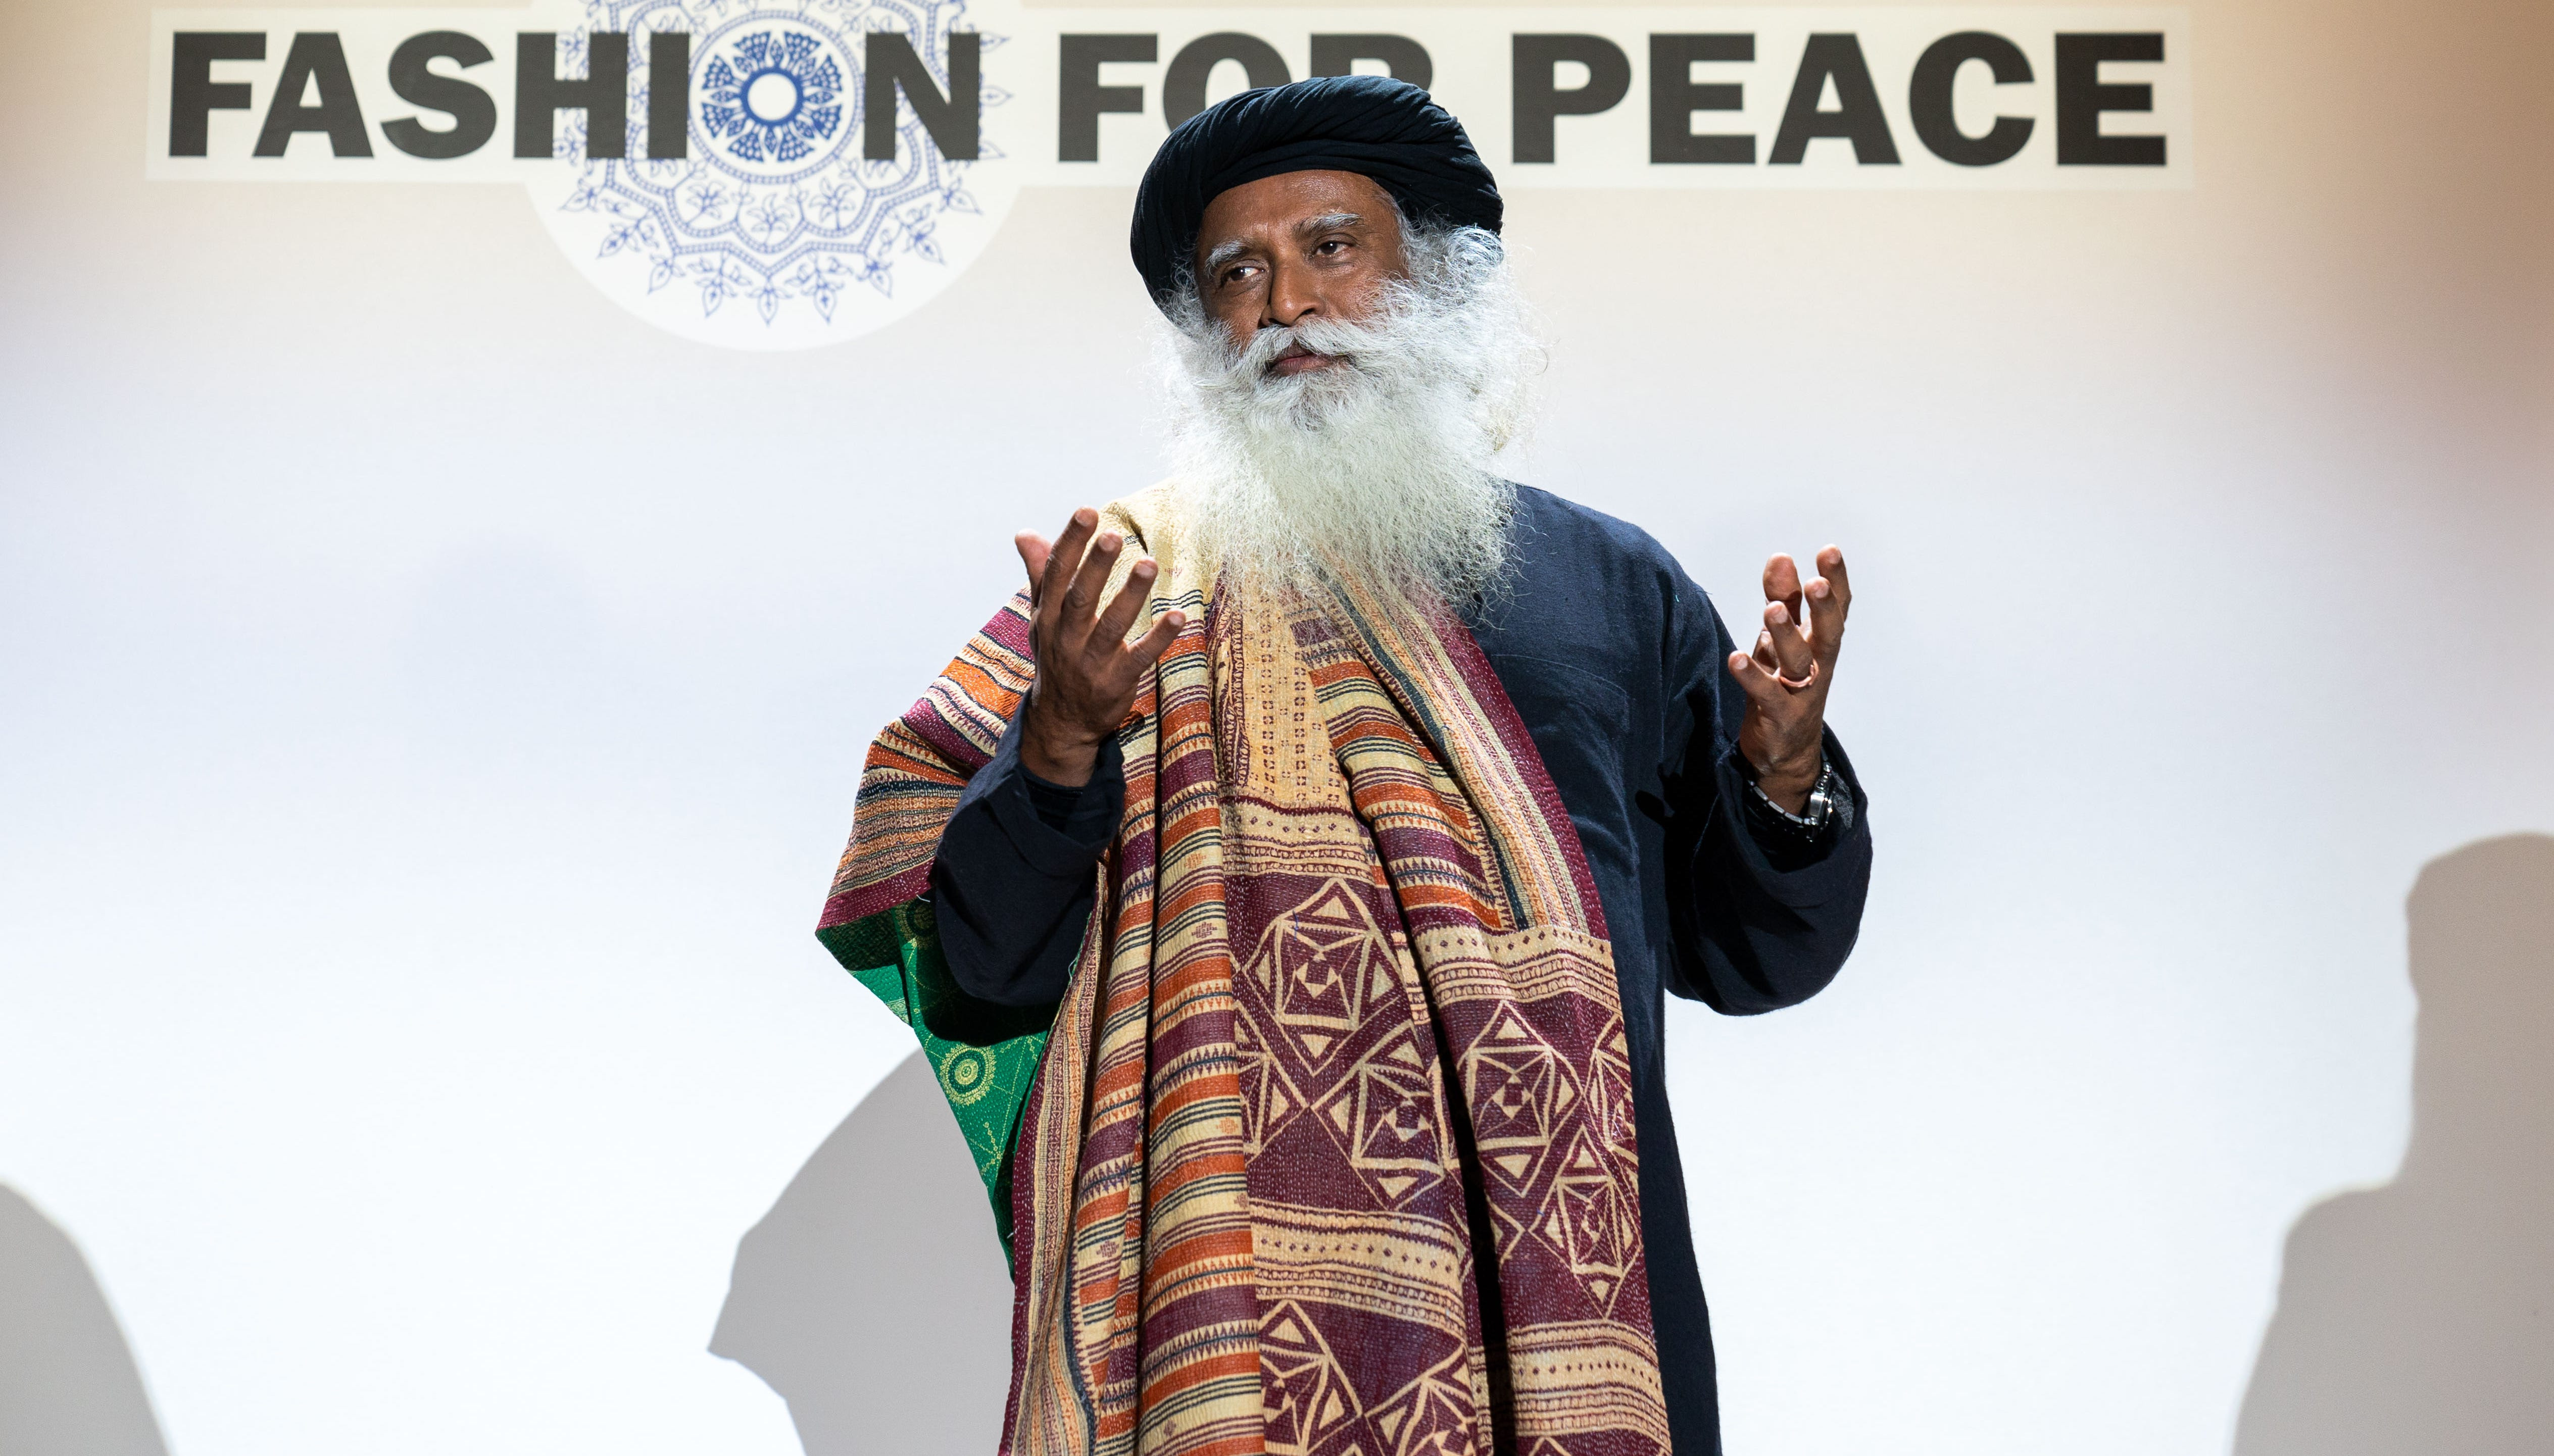 Sadhguru has concerns about the negative impacts of fast fashion on the environment.